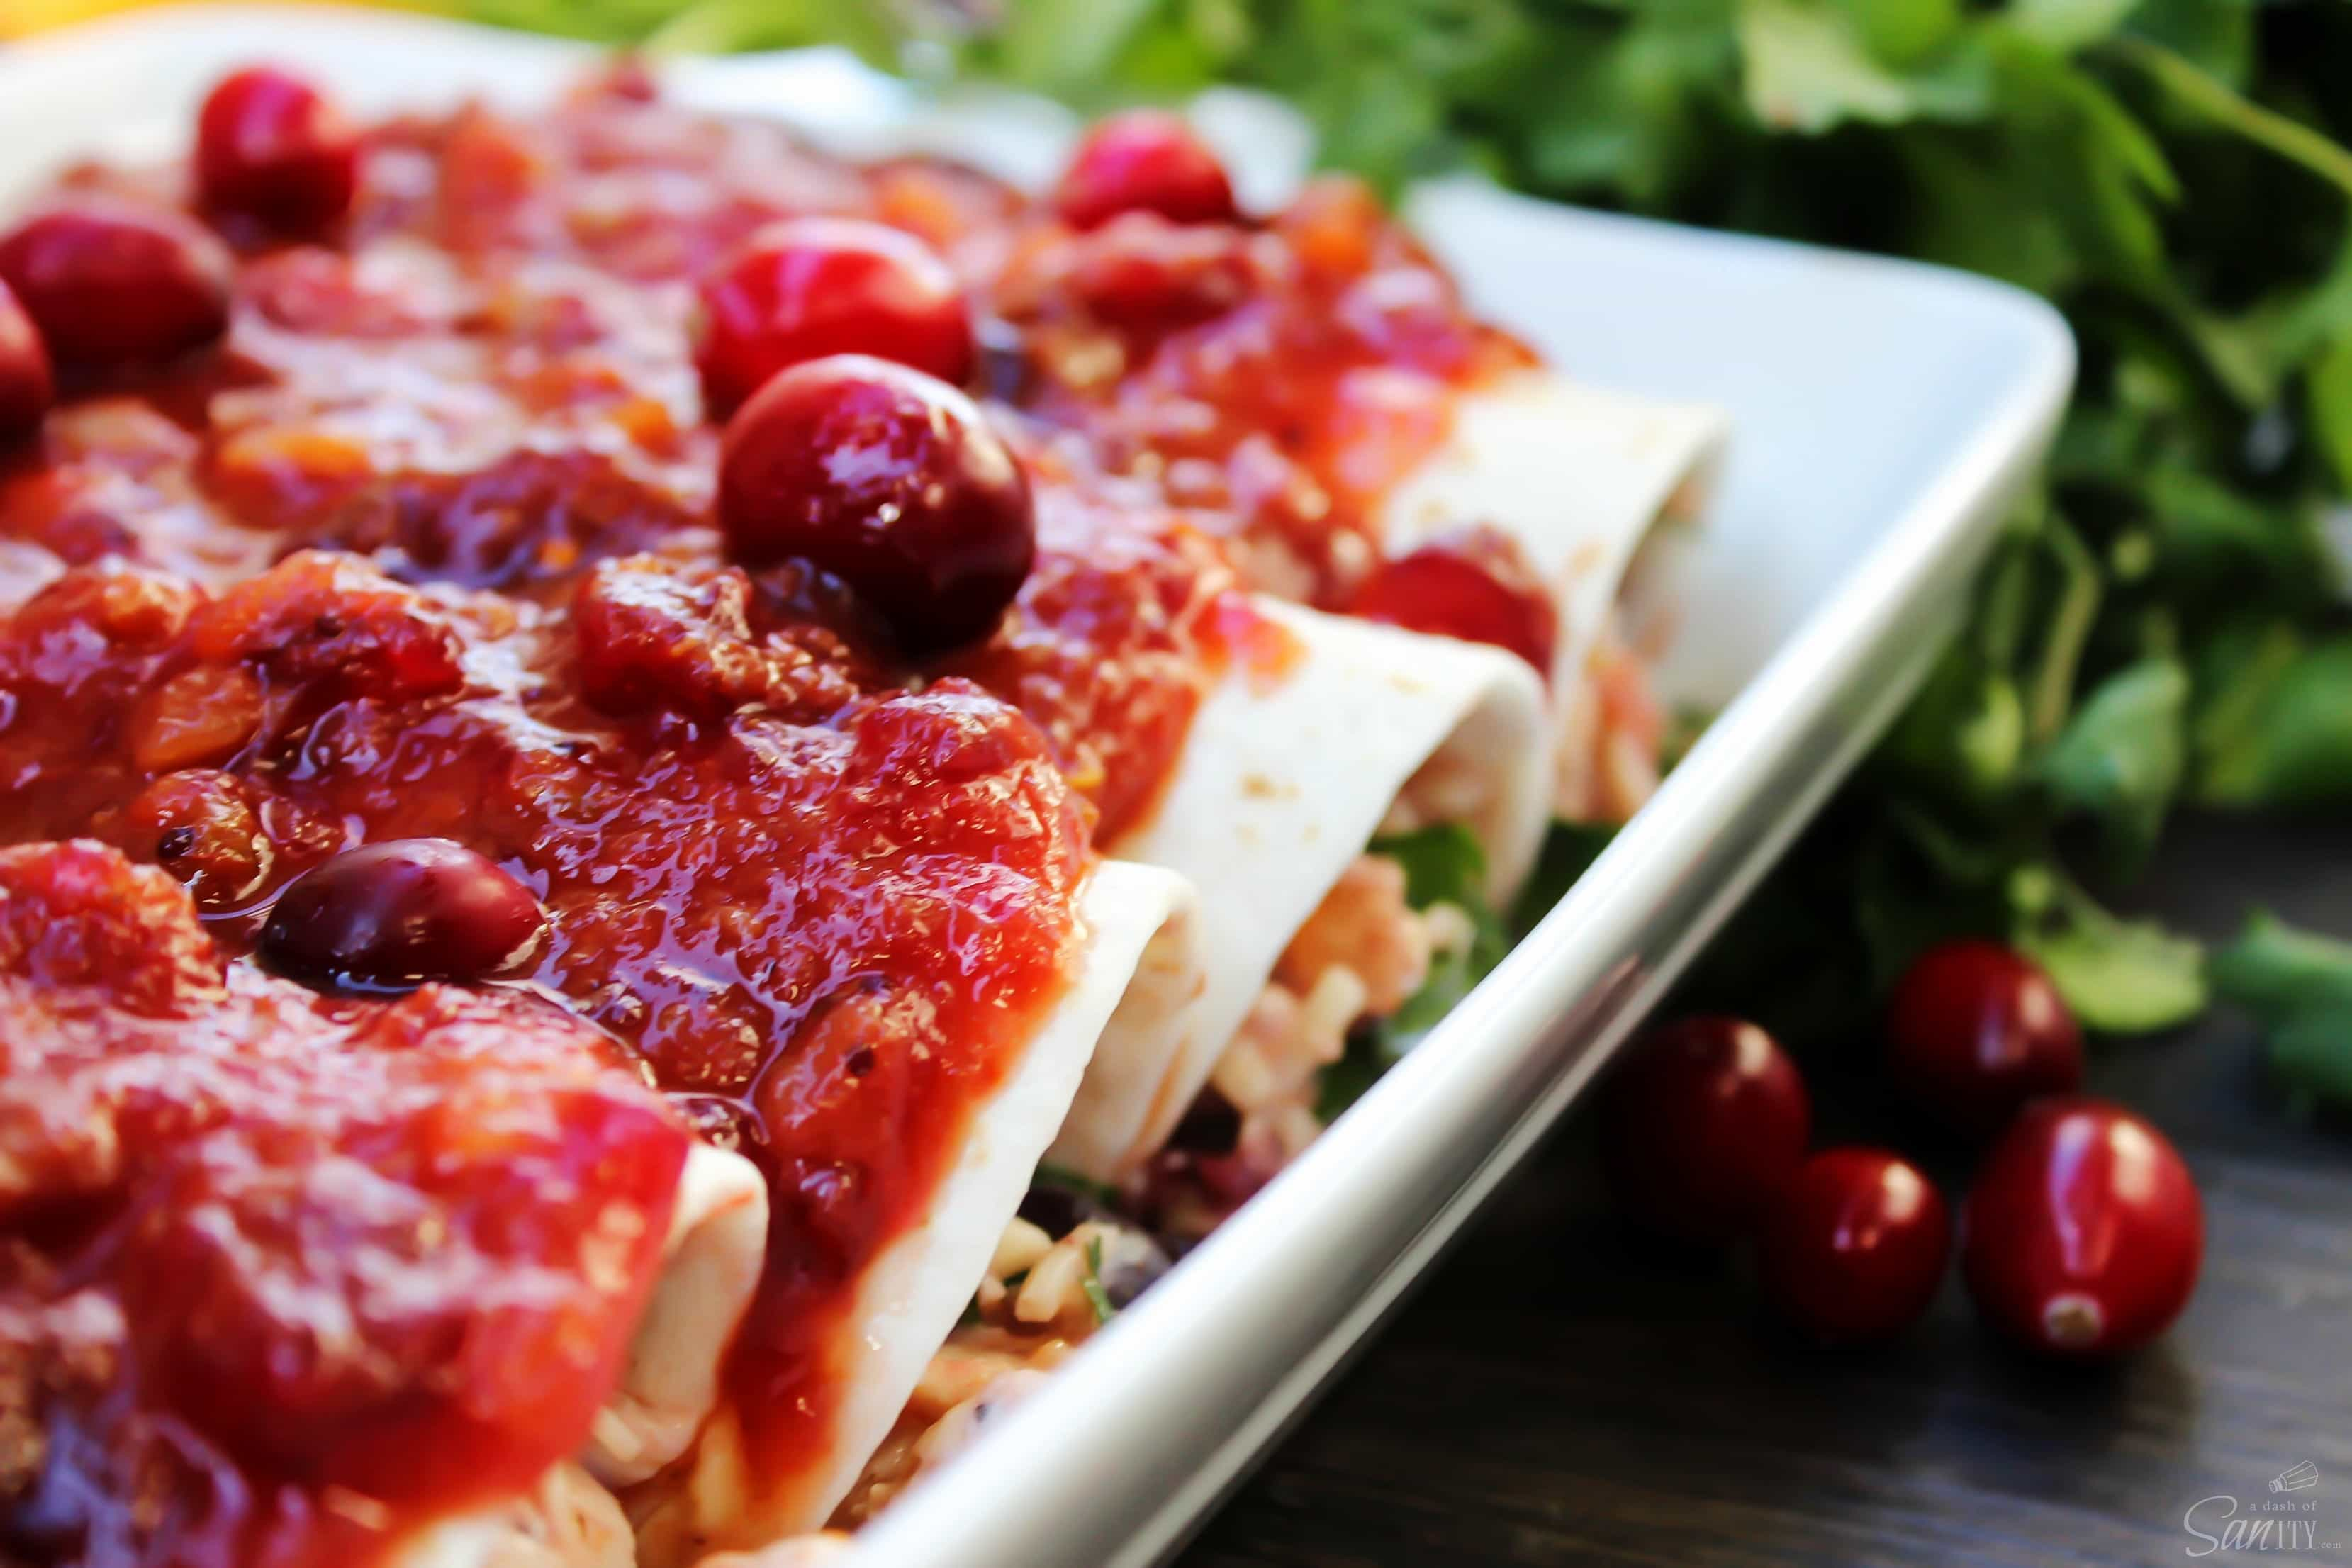 Made with a tangy-sweet sauce these Cran-Turkey Enchiladas are the best twist on enchiladas that I have ever had. Don't wait for the holidays to make these!